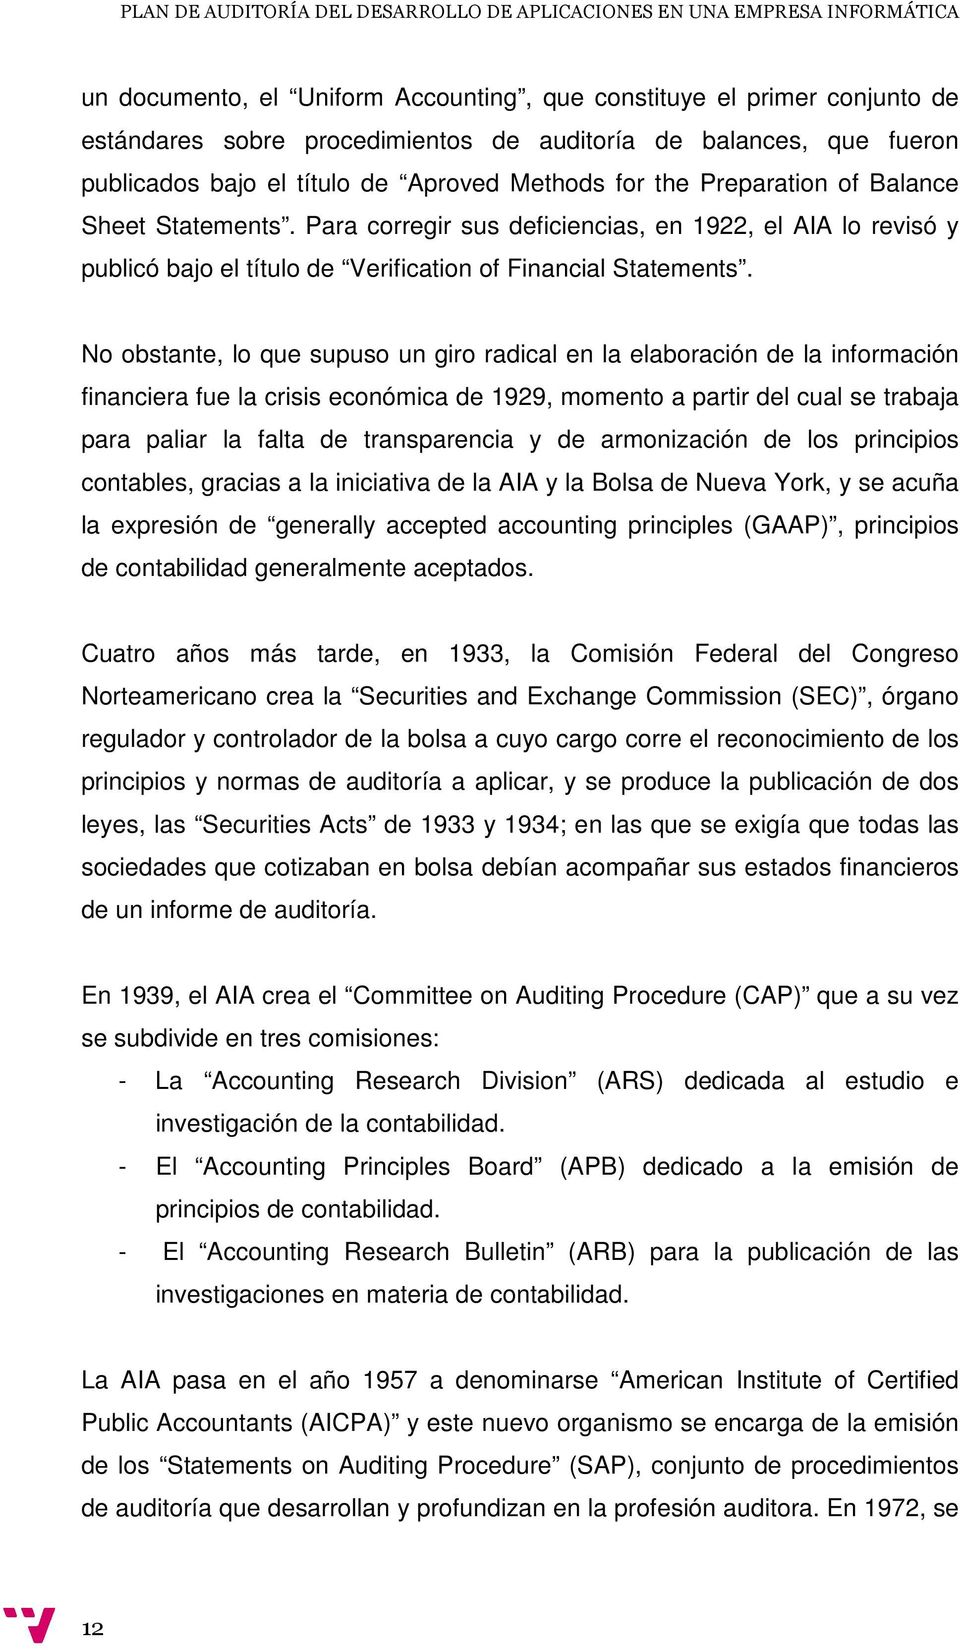 Para corregir sus deficiencias, en 1922, el AIA lo revisó y publicó bajo el título de Verification of Financial Statements.